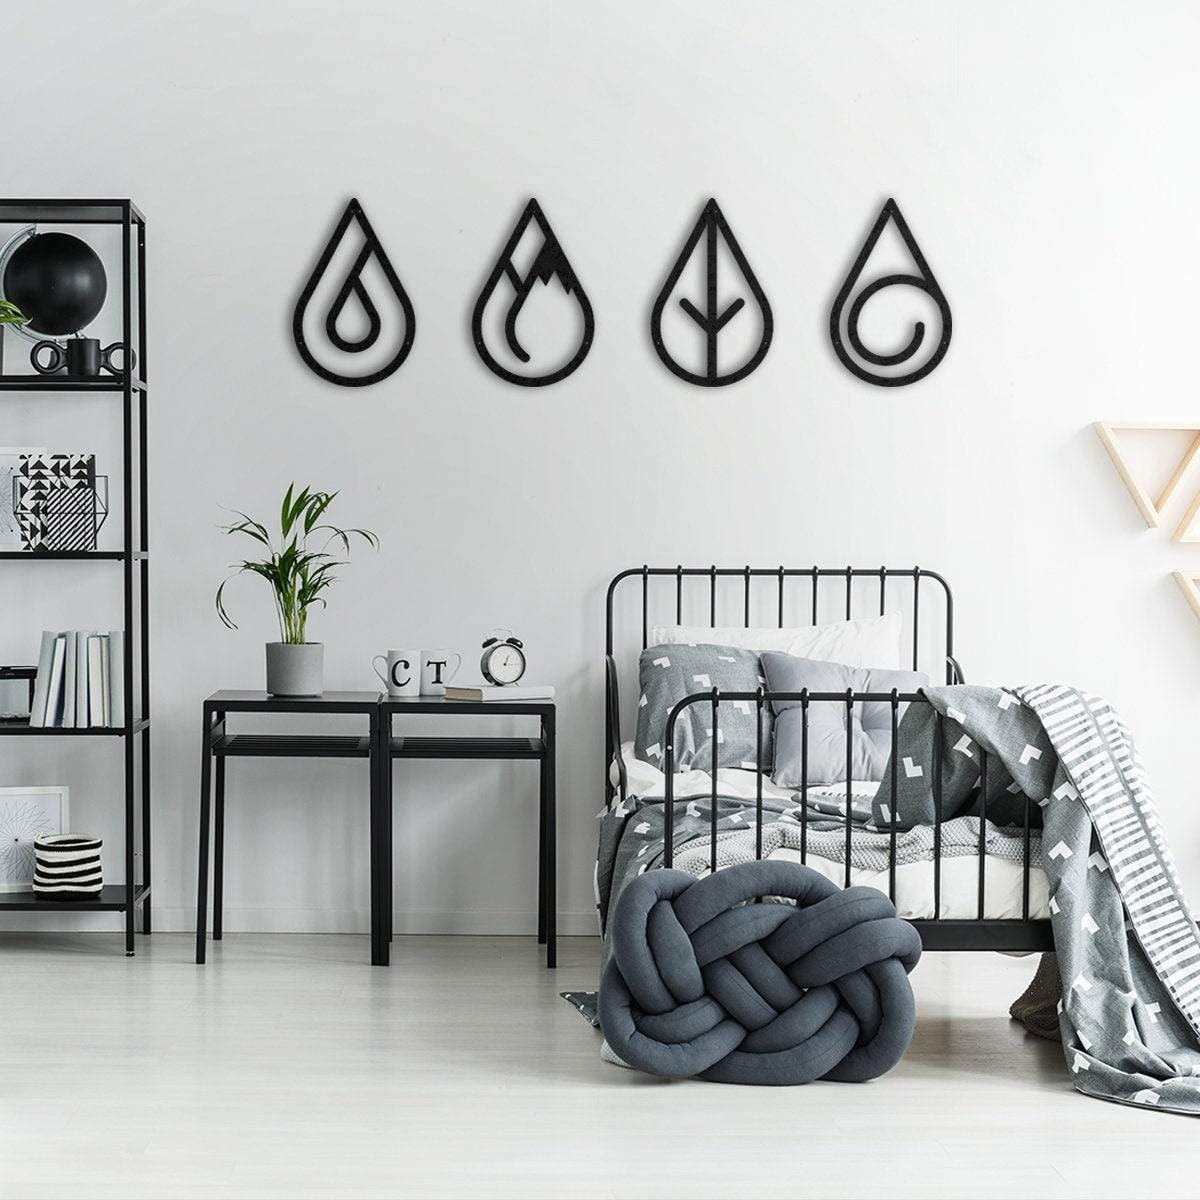 Free Brand Four Elements Department store Max 54% OFF Metal De Decor Singa Wall